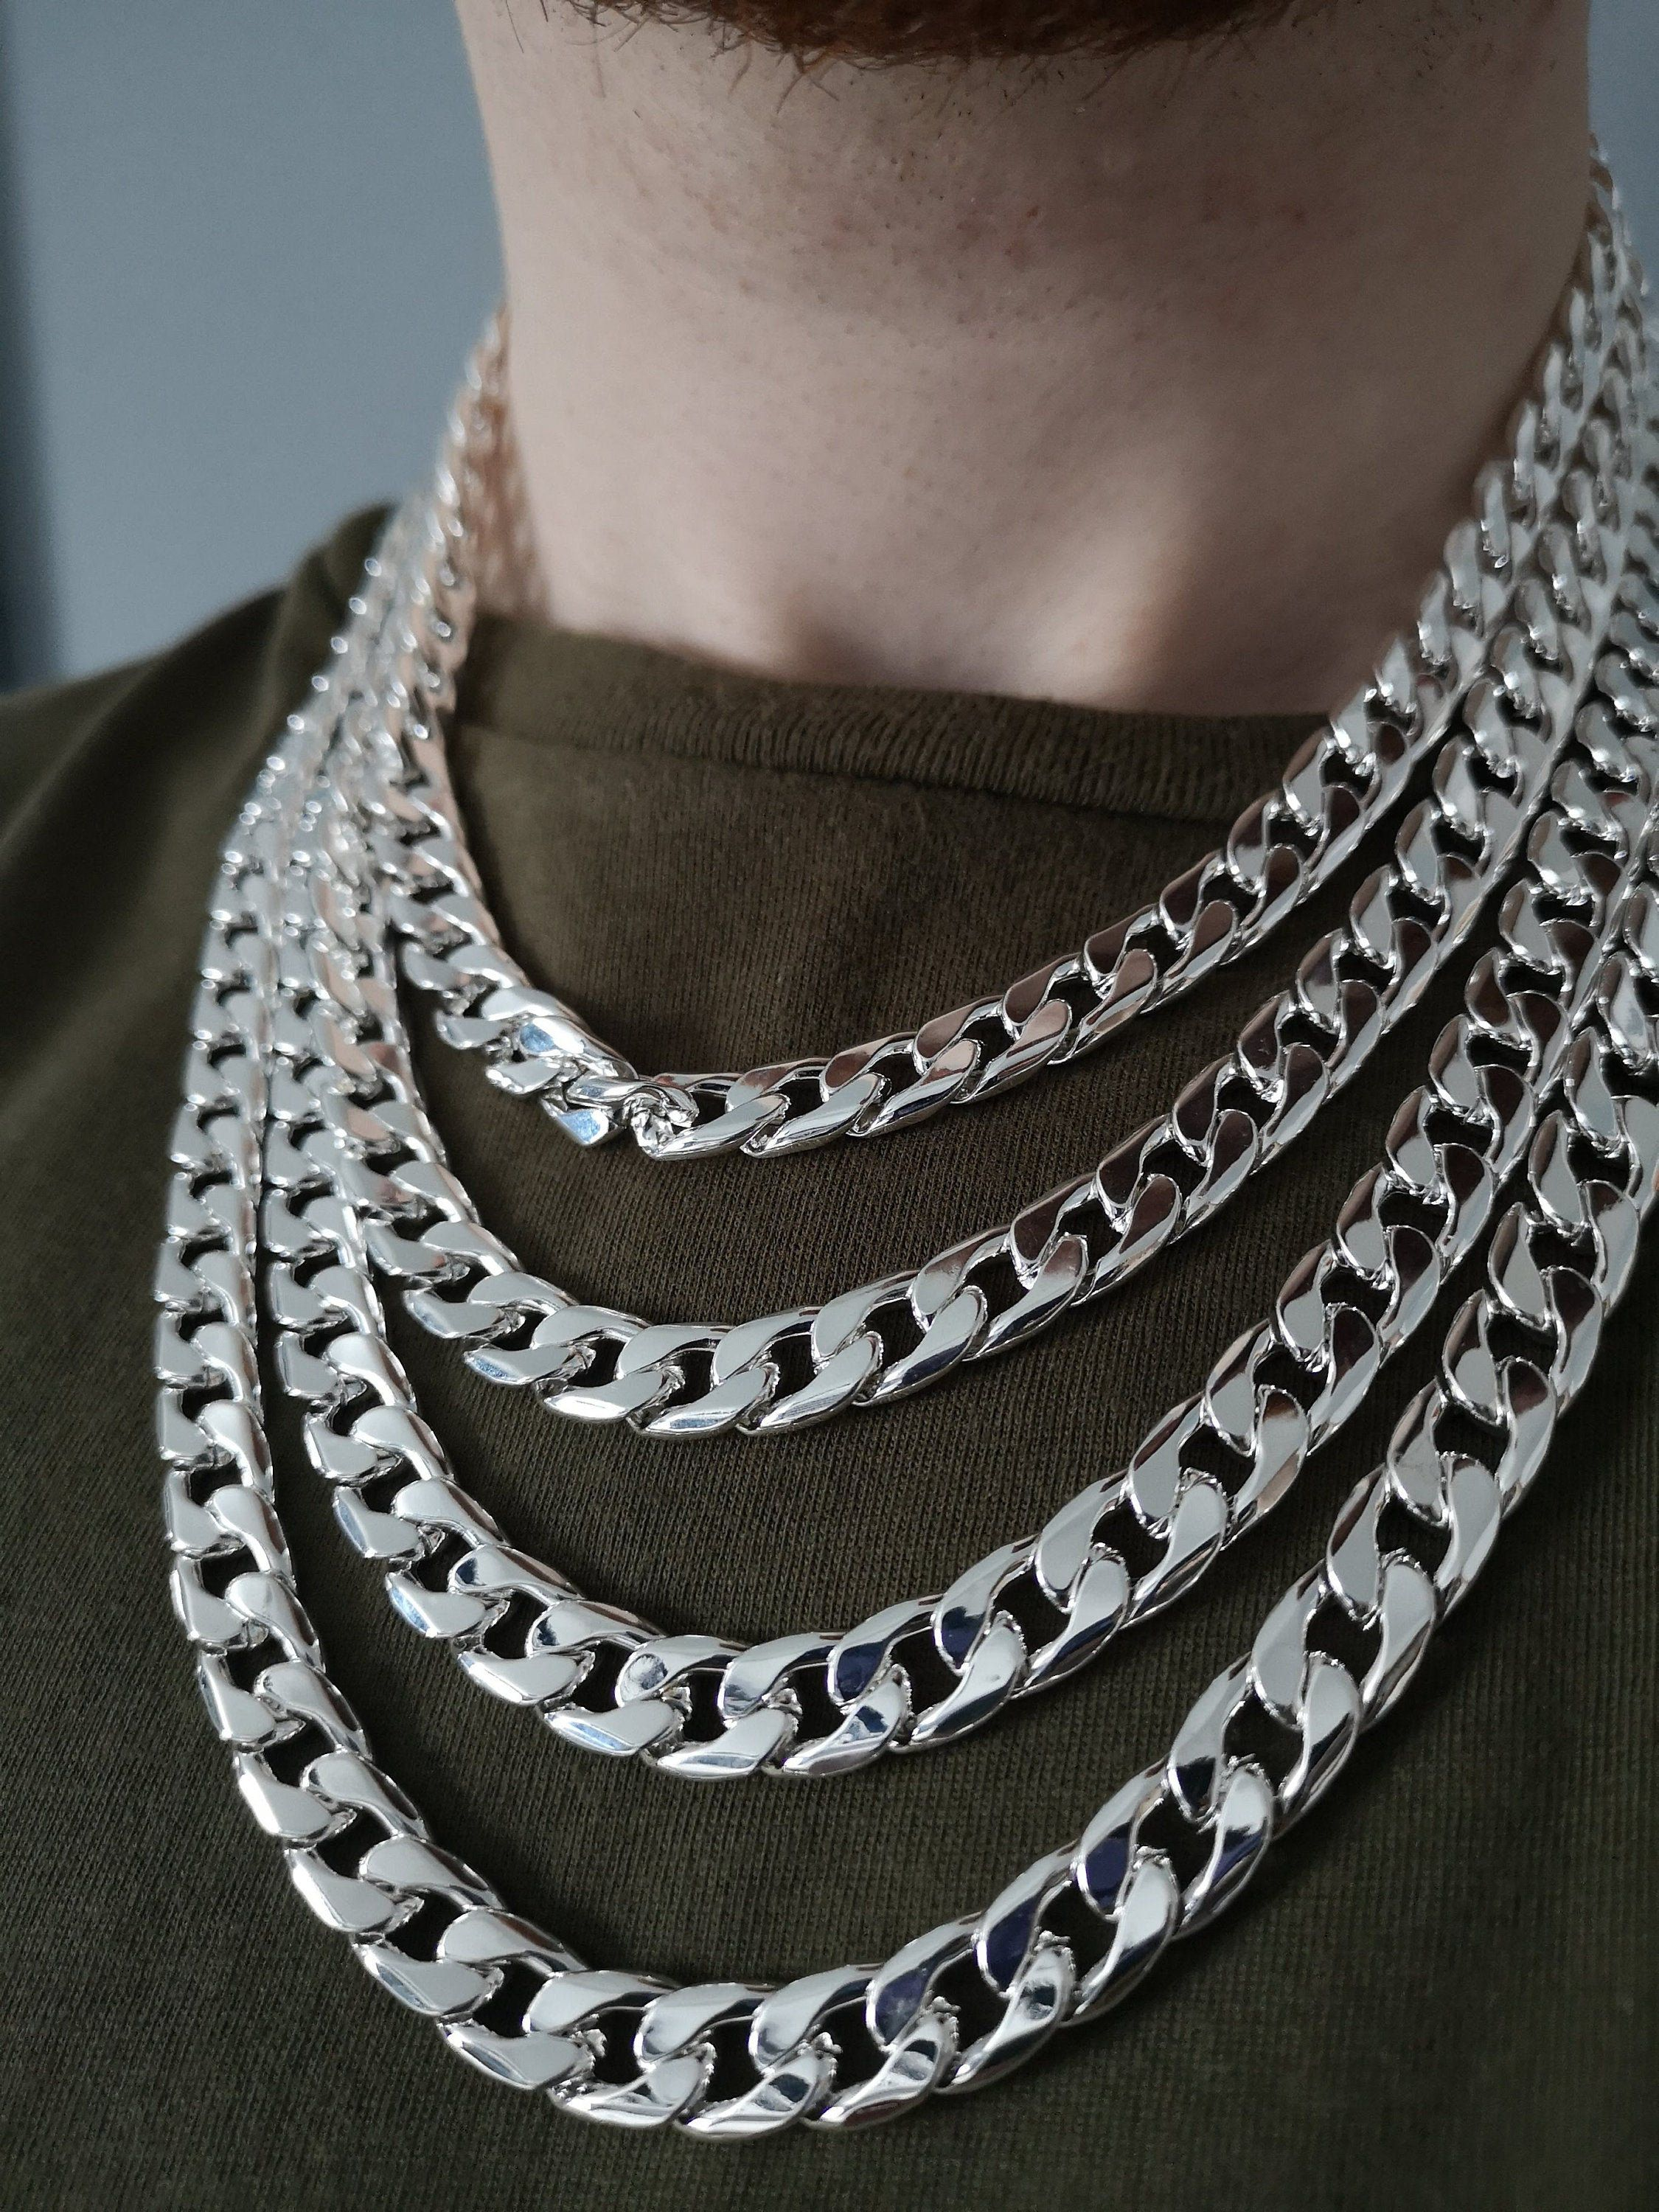 Men S Silver Chain Necklace Cuban Link Chain Cuban Curb Chain Necklace Cuban Necklace For Men Chain Necklace Thick Chain Necklace Mens Silver Chain Necklace Thick Chain Necklace 18k Gold Chain